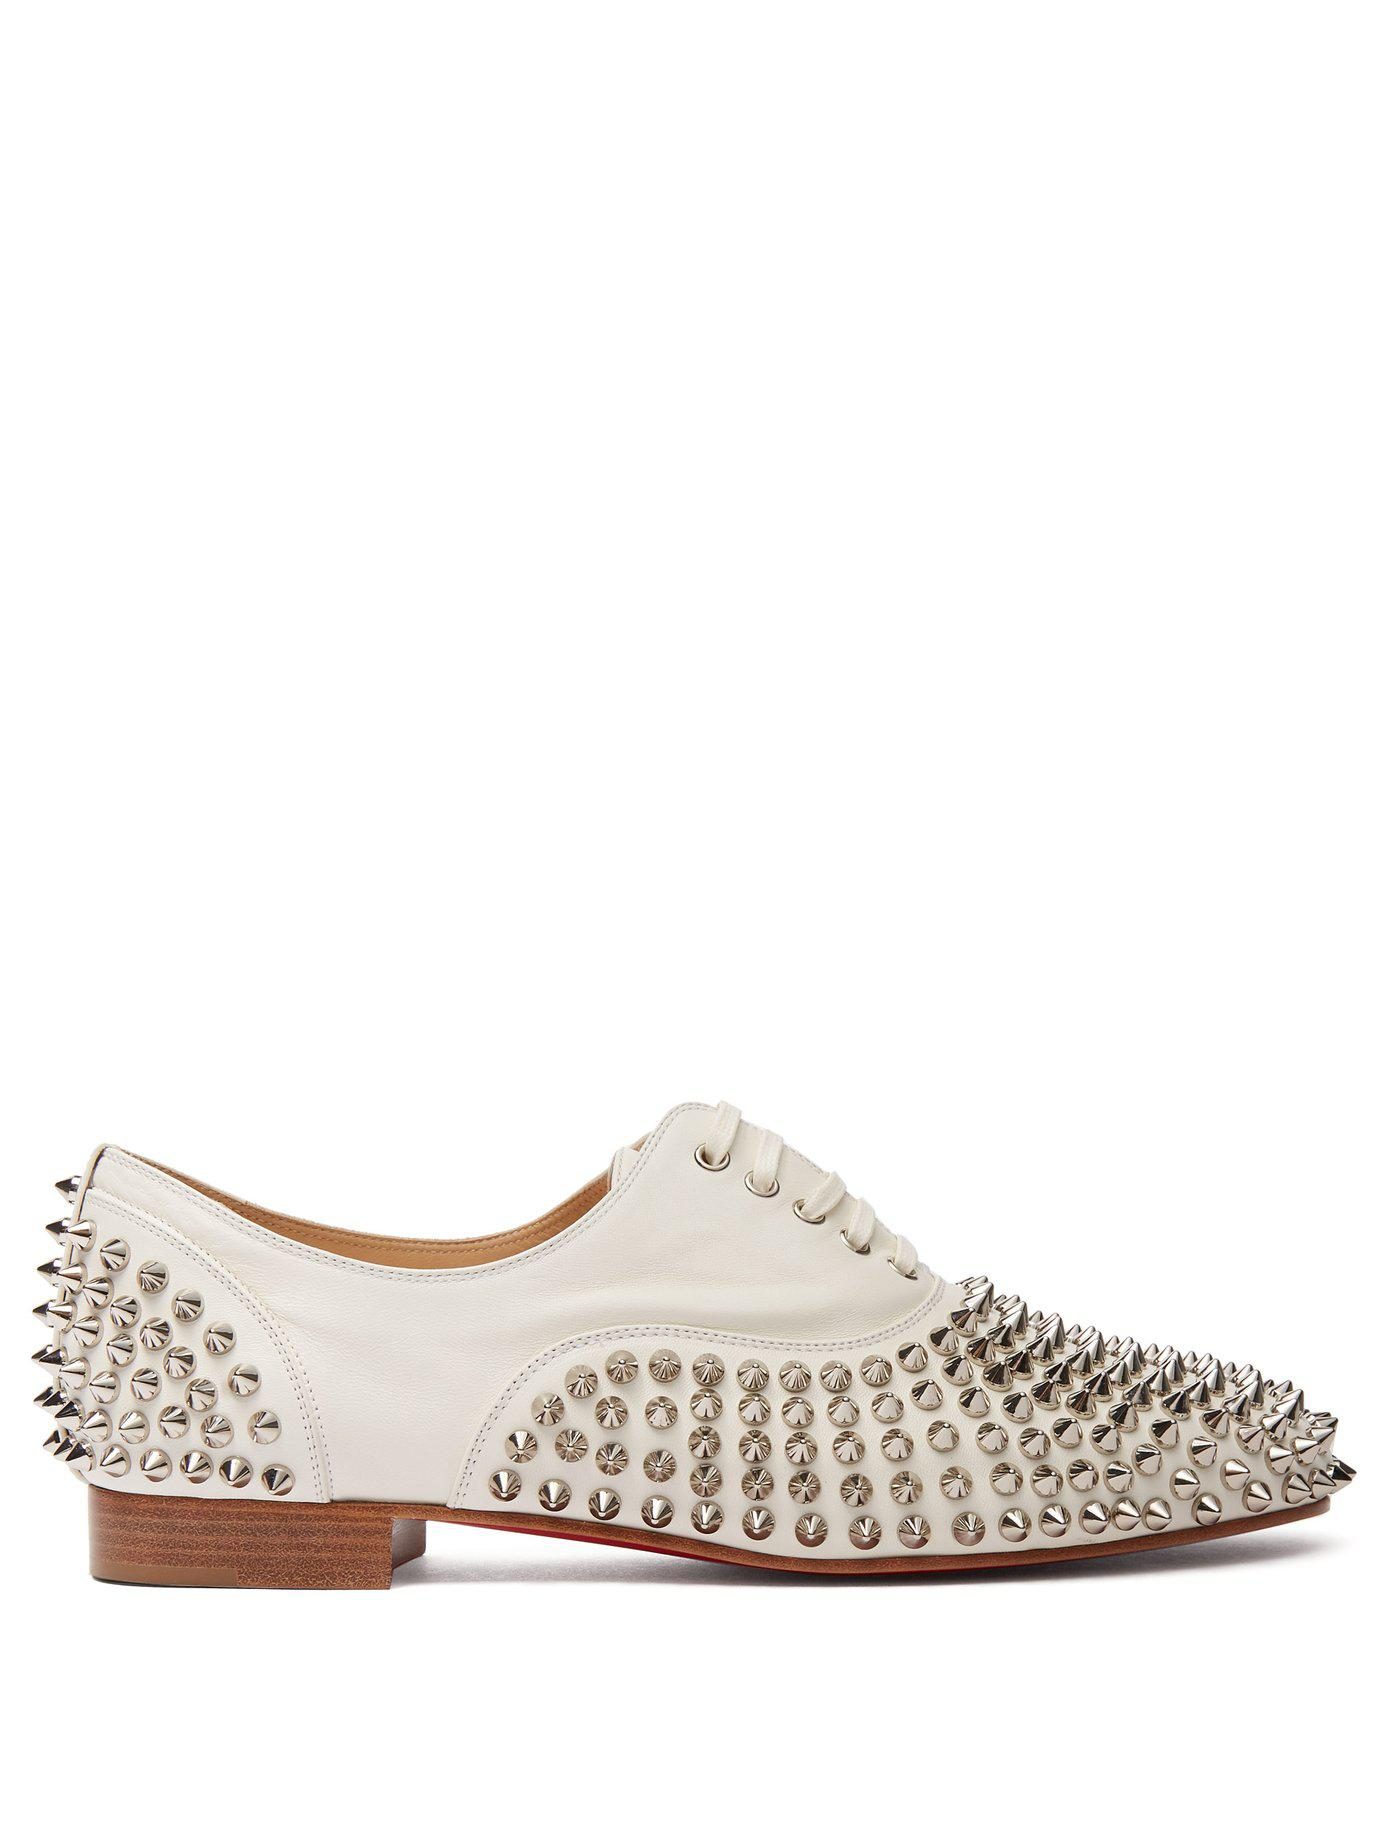 41e9f2e825d4 Christian Louboutin. Women s White Freddy Spikes Donna Leather Oxfords